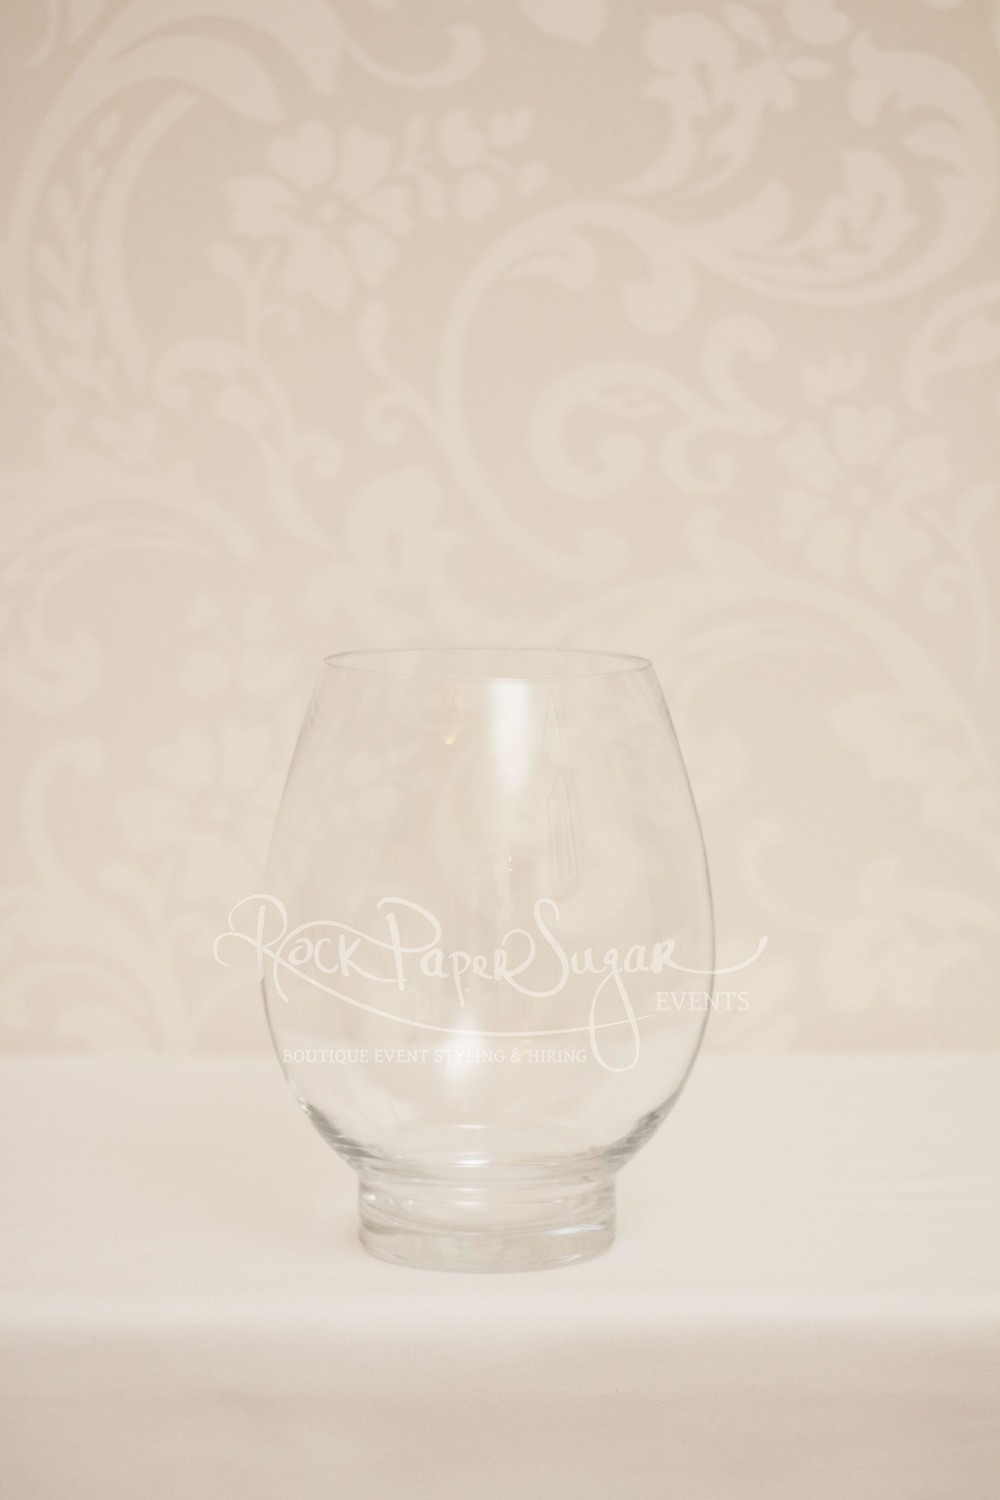 Rock Paper Sugar Events Glassware 011.jpg